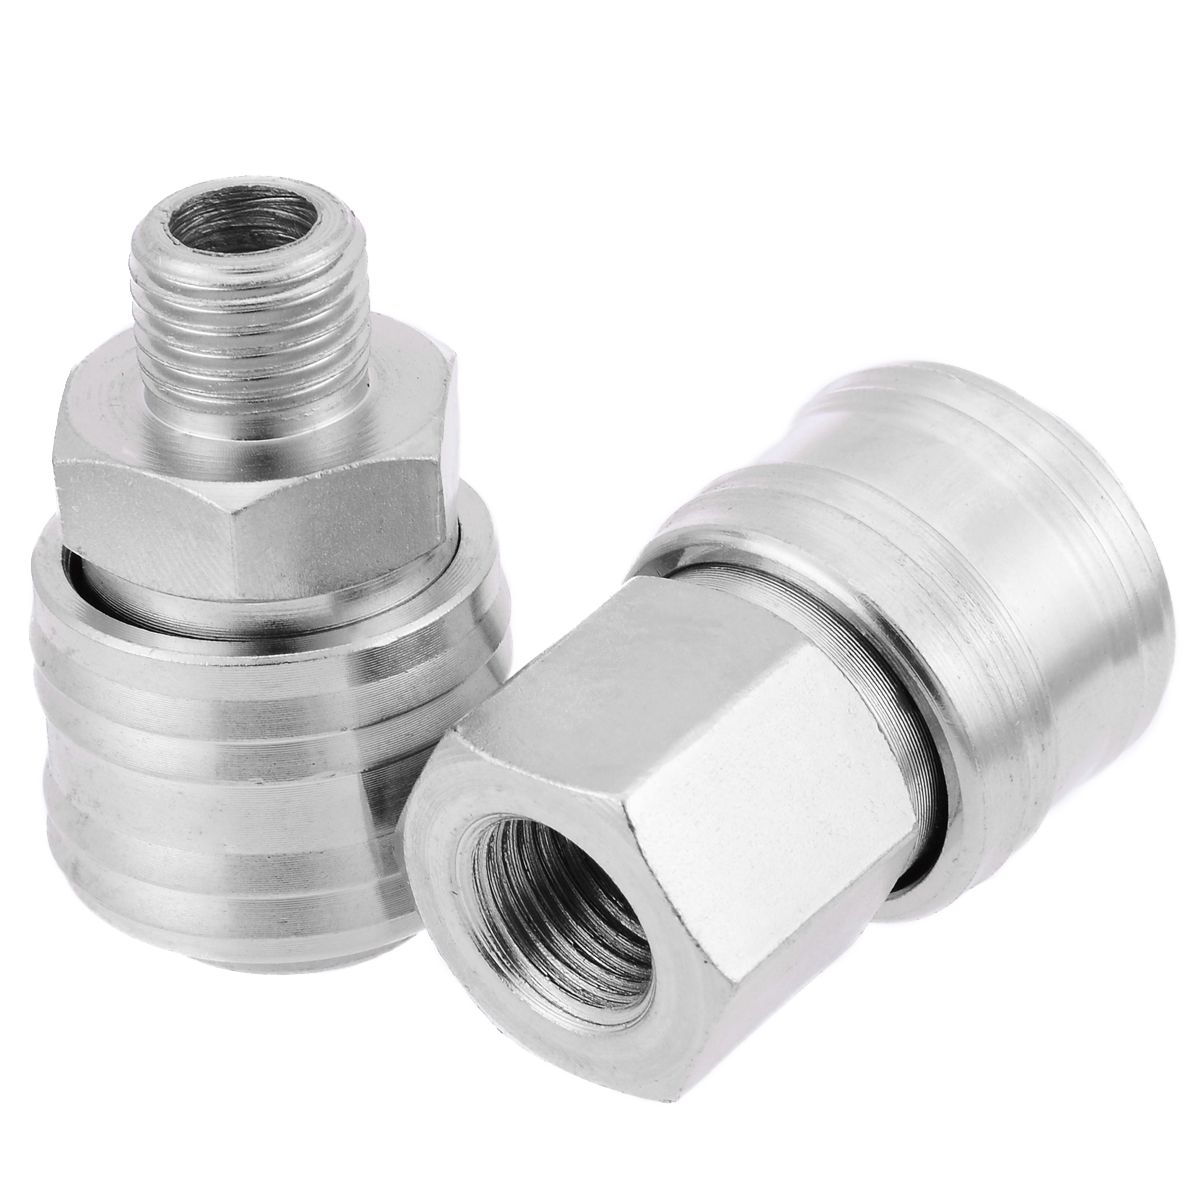 6pcs Euro Air Hose Compressor Fittings Connector Female/Male Quick Release 1/4 BSP Thread bsp female air compressor pneumatic quick coupler connector socket fittings set